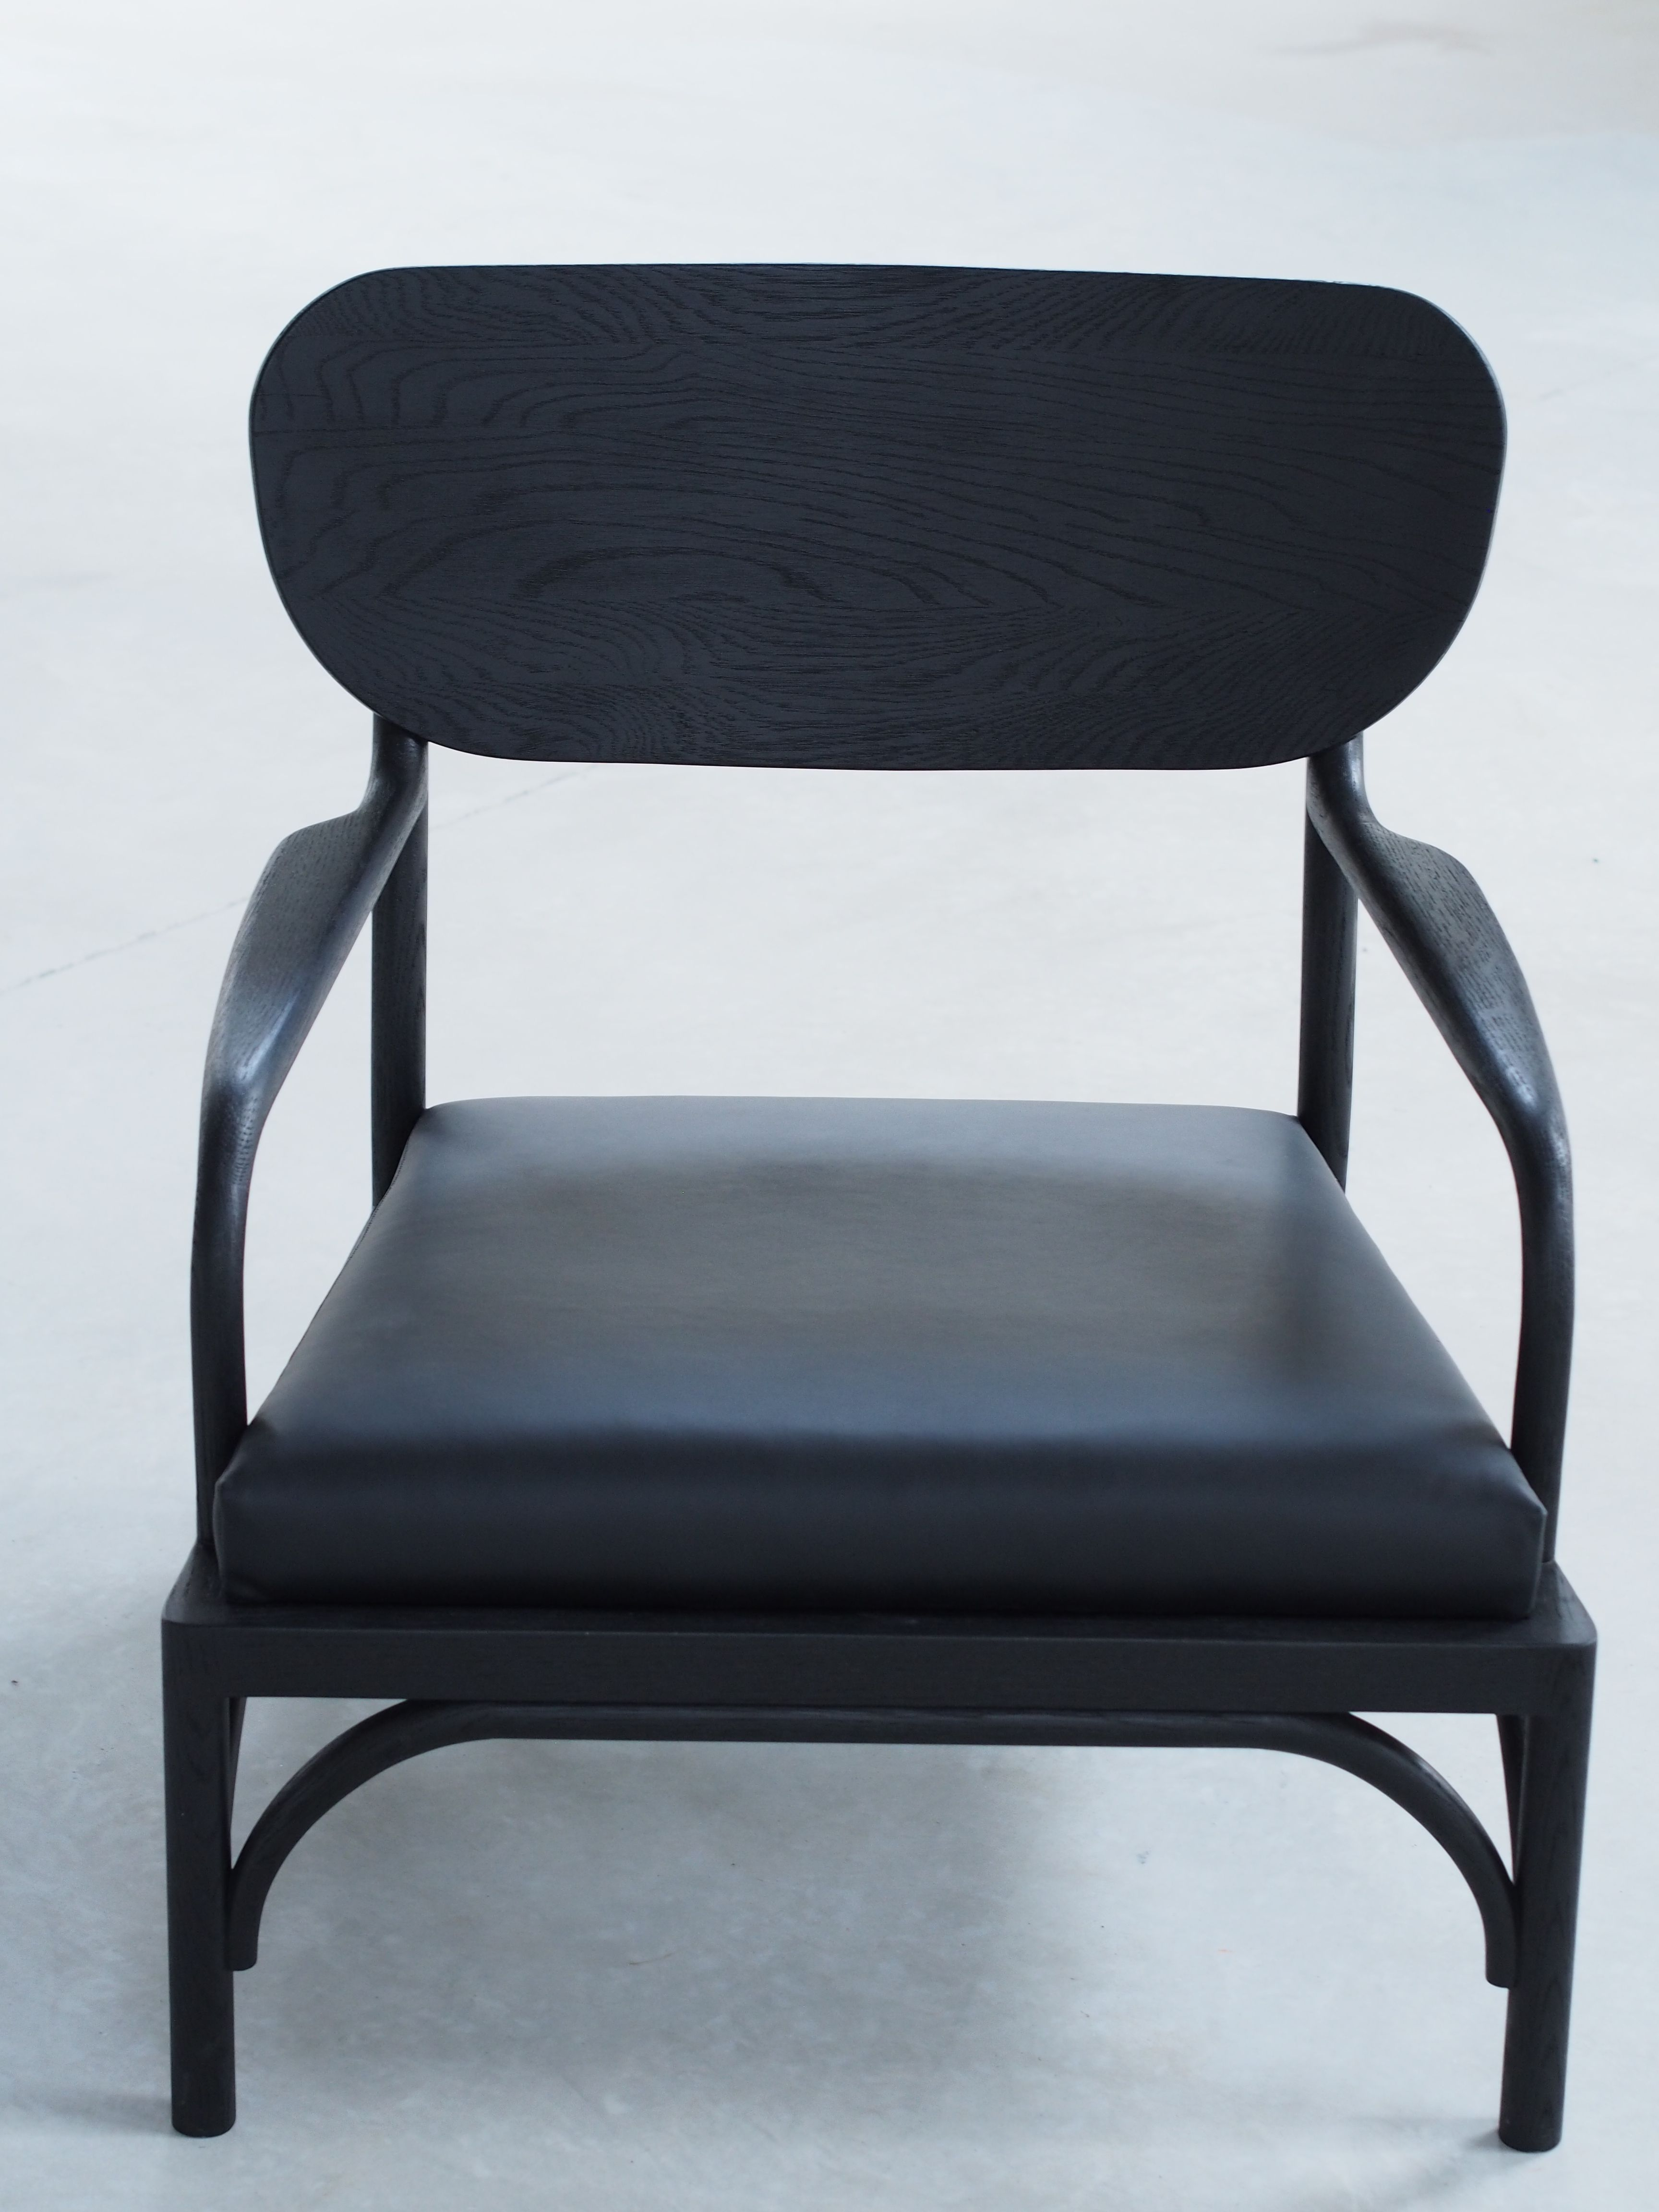 Akar De Nissim S New Lounge Chair Pierre Inspired From